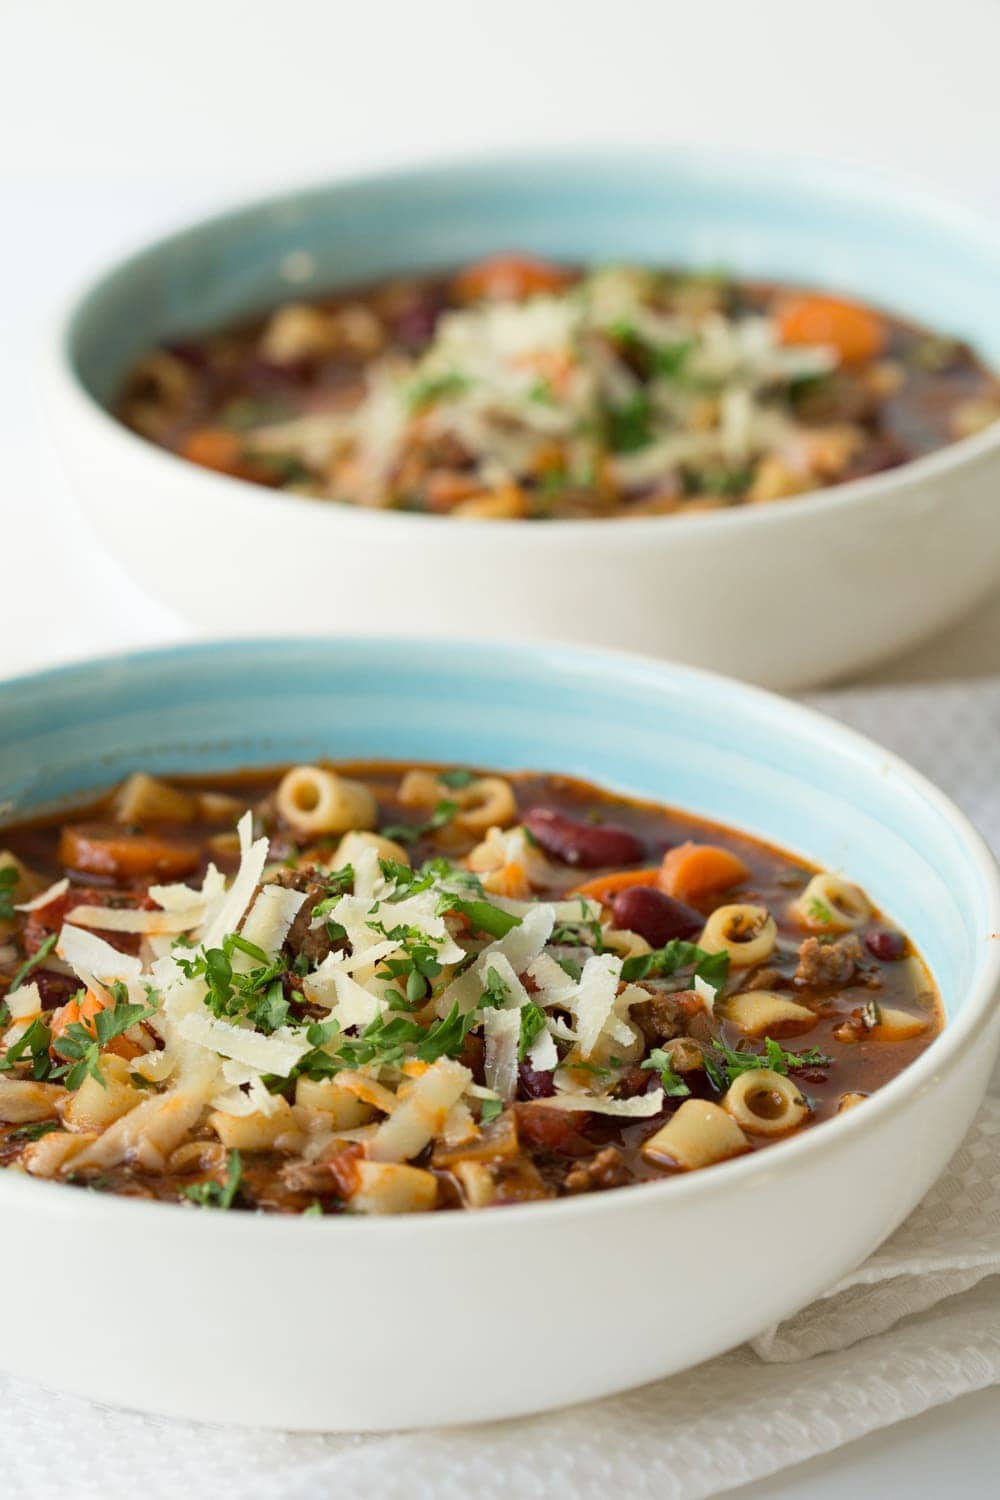 Slow Cooker Pasta e Fagioli - a super delicious, classic Italian soup. Takes about 45 minutes to prep, the slow cooker does the magic! Walk in the door, after a long day and the most amazing fragrance will greet you! thecafesucrefarine.com